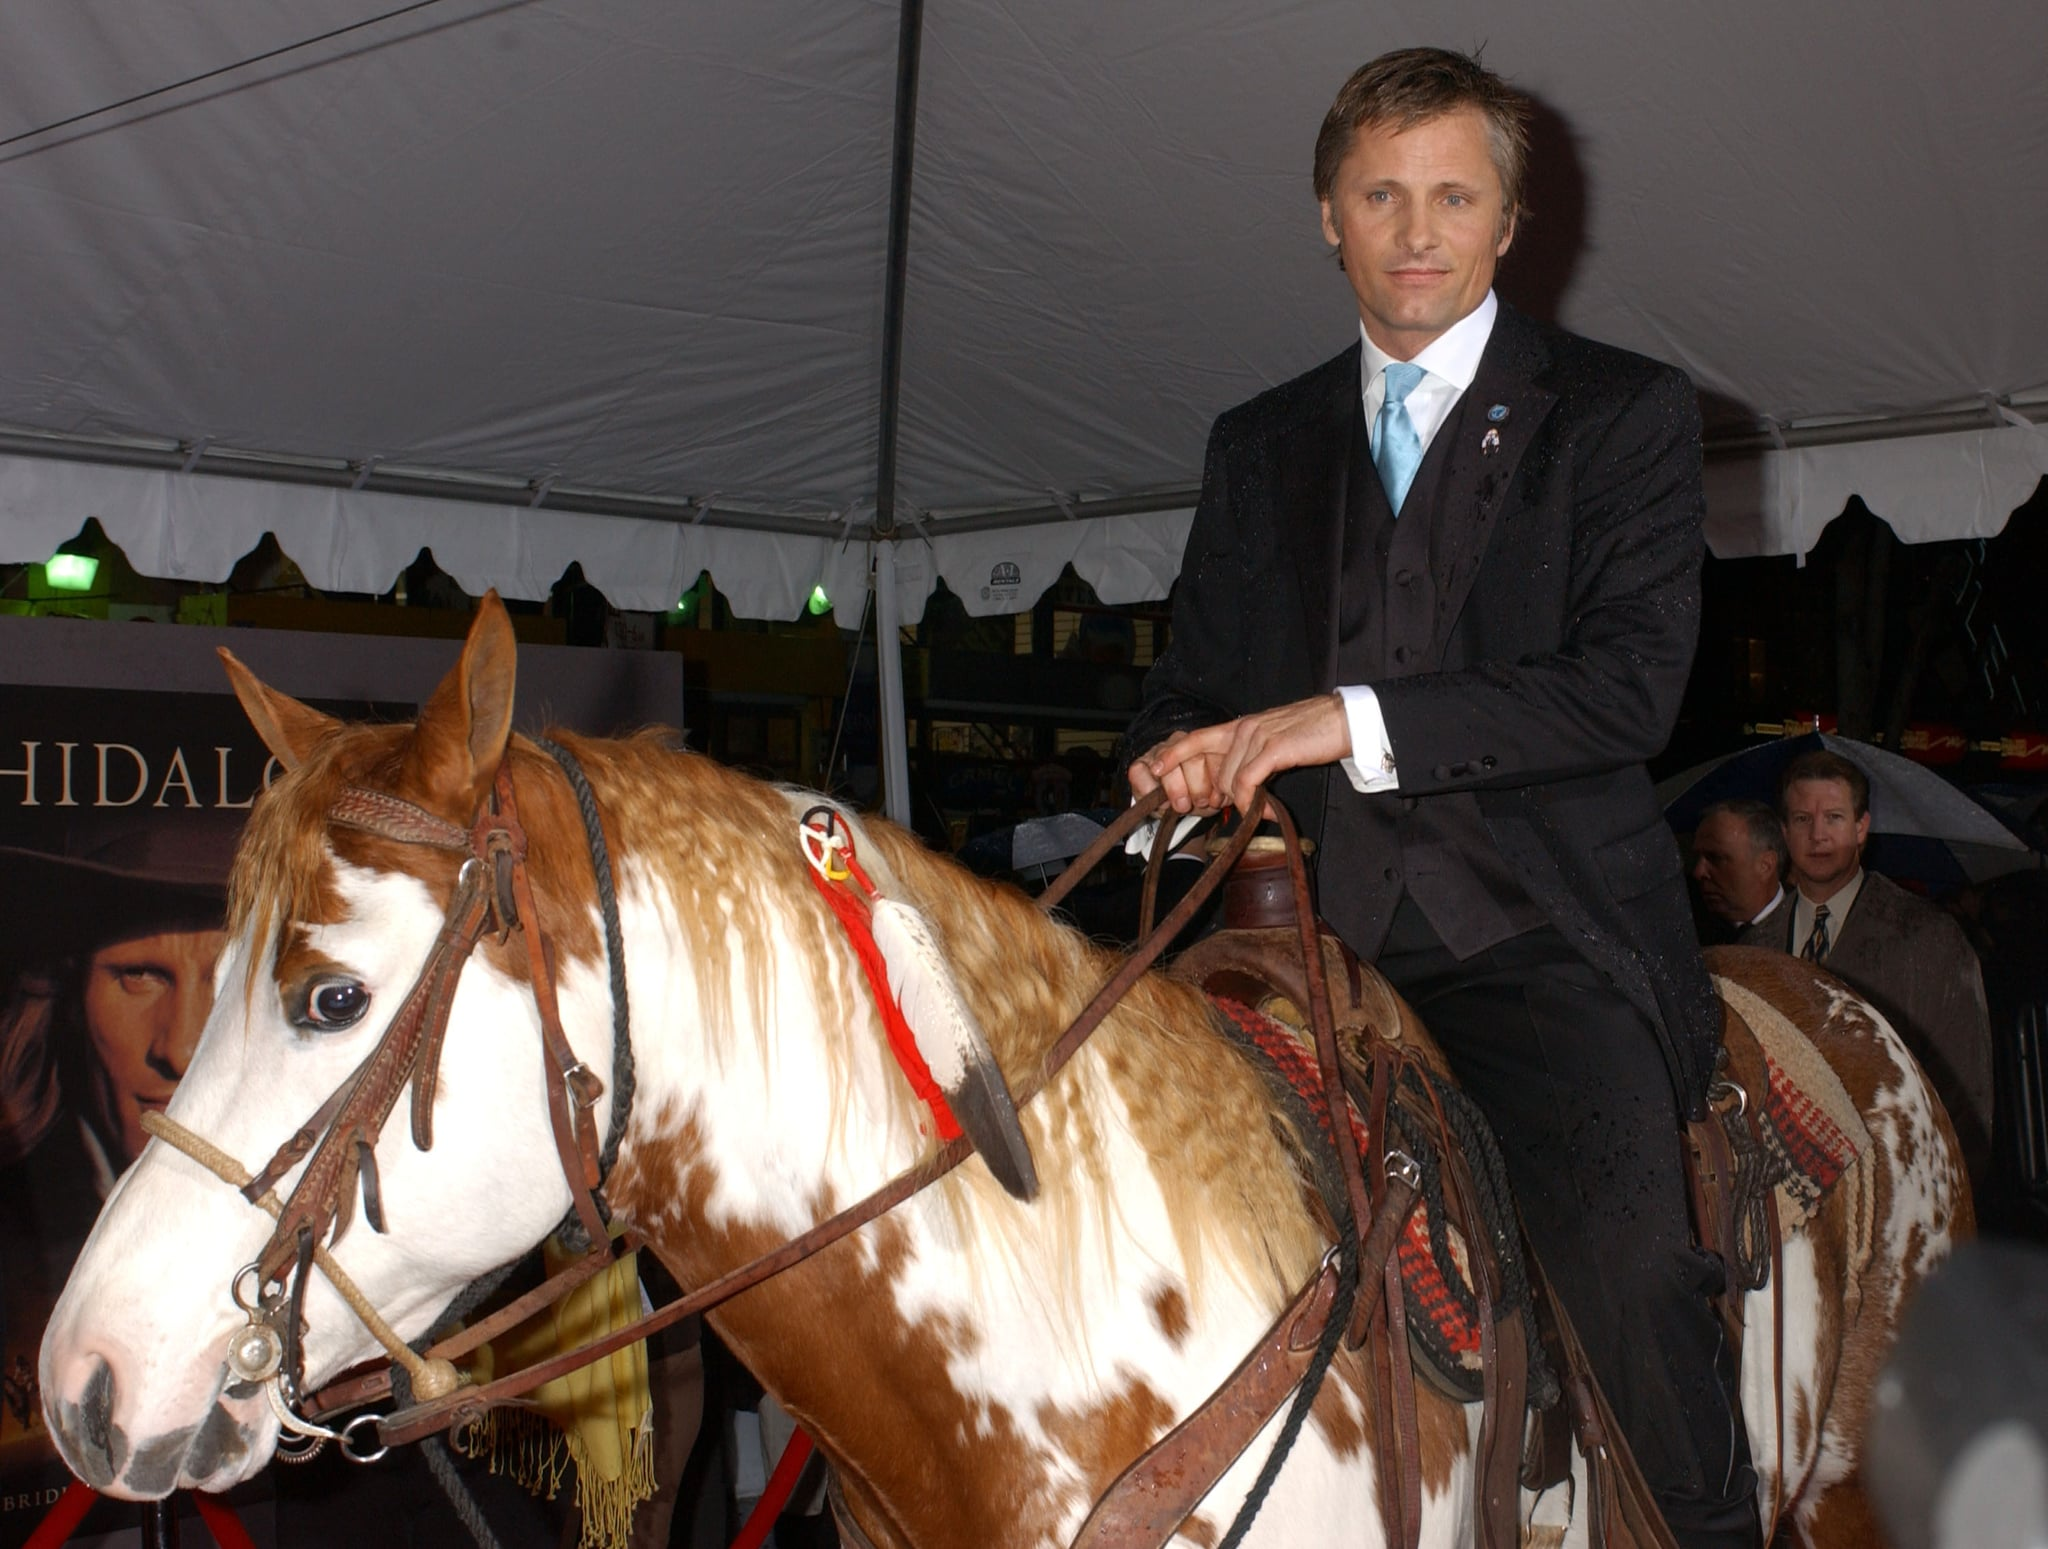 Viggo Mortensen cuts a dashing figure on his painted mount at the Hidalgo premiere in 2004.